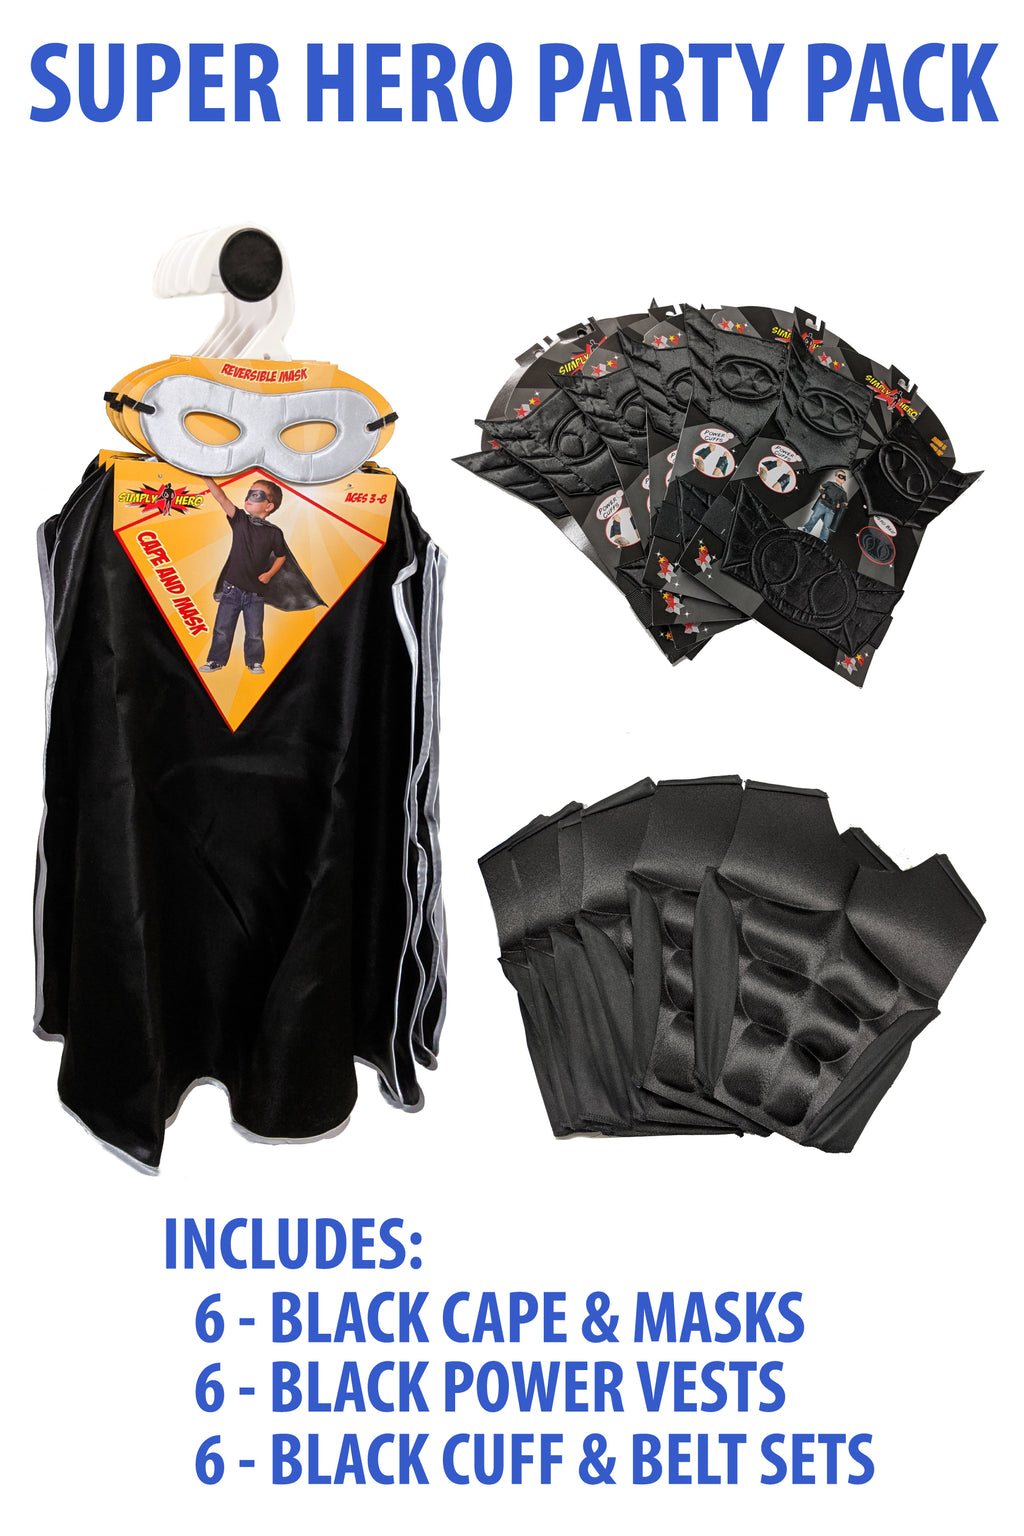 Super Hero Party Pack - Black